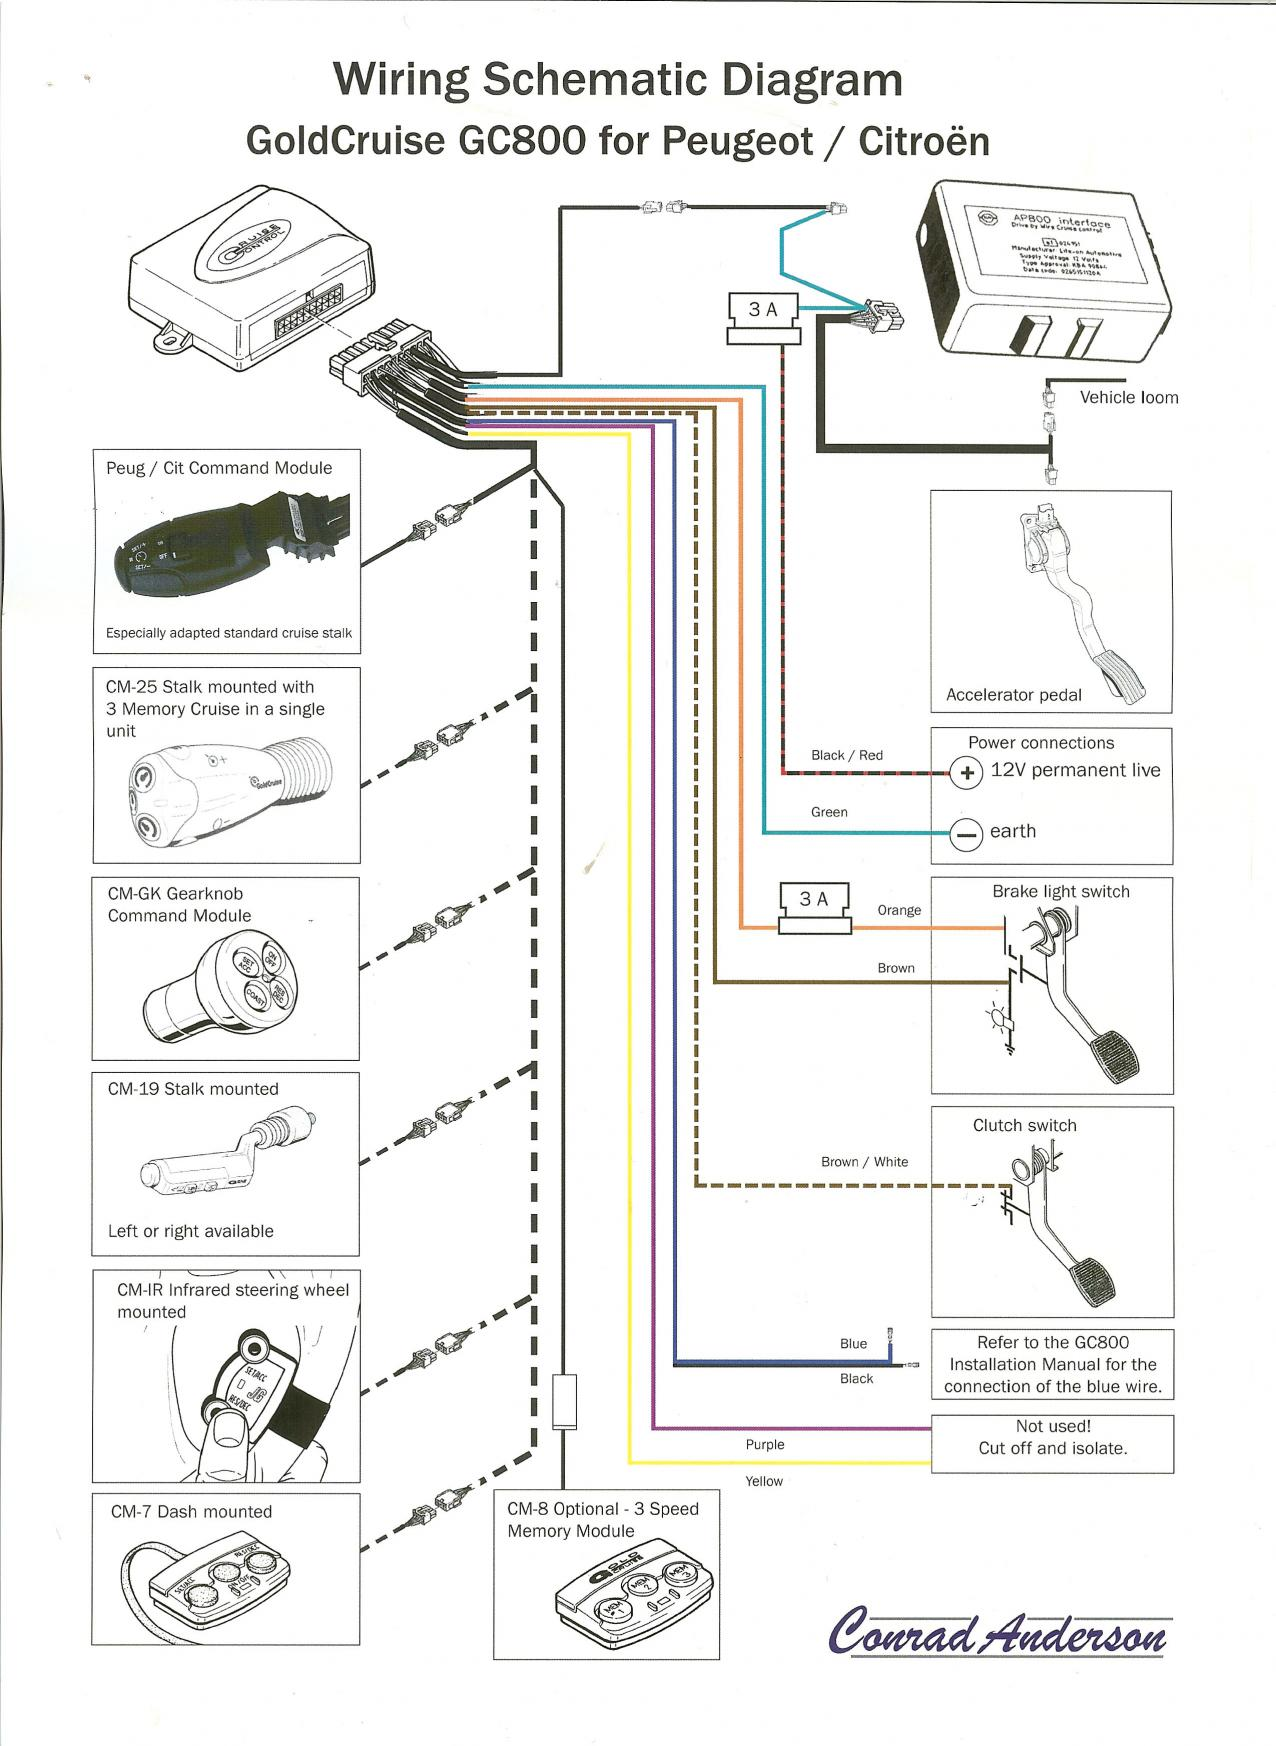 diagrams 800427 rostra cruise control wiring diagram rostra cruise control wiring diagram at reclaimingppi.co